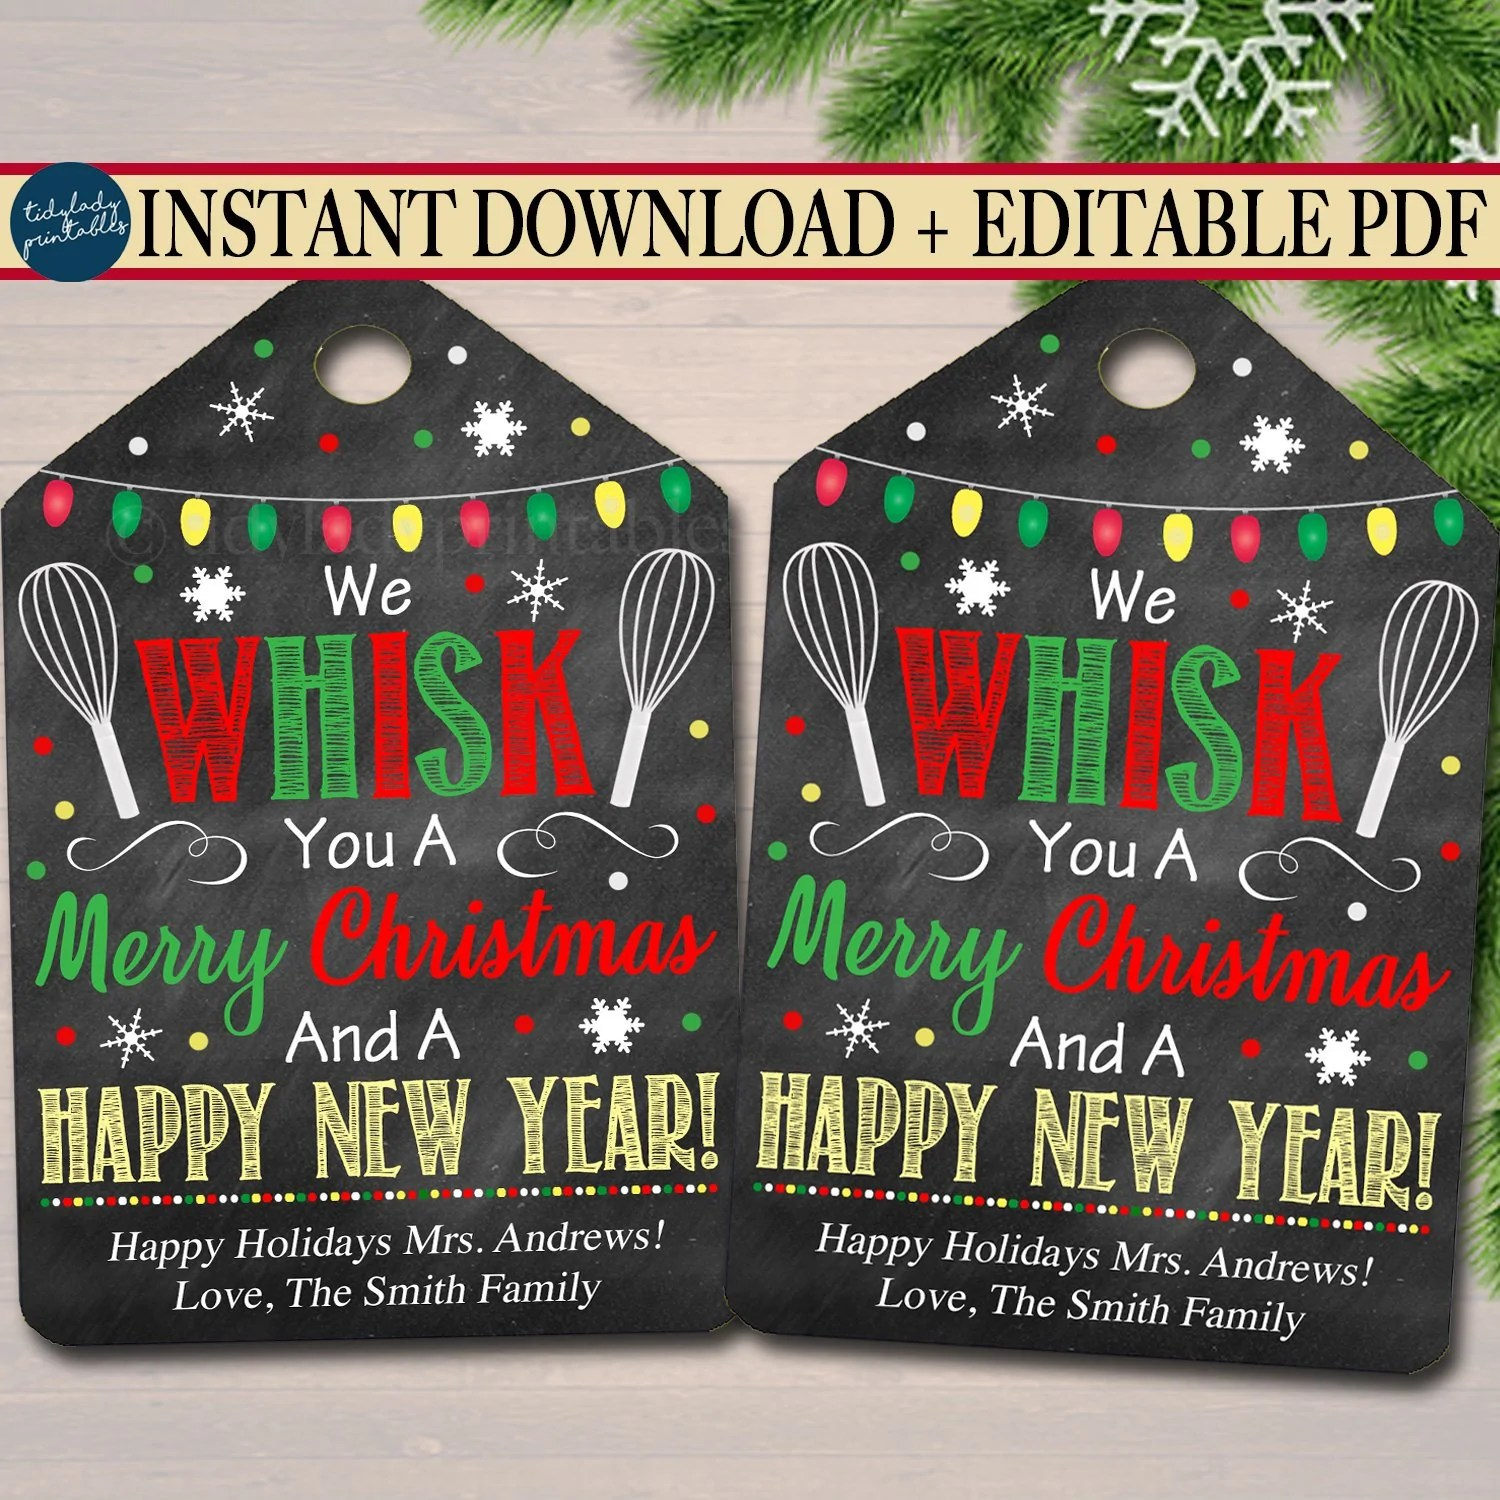 We Whisk You a Merry Christmas Gift Tag   TidyLady Printables [ 1500 x 1500 Pixel ]